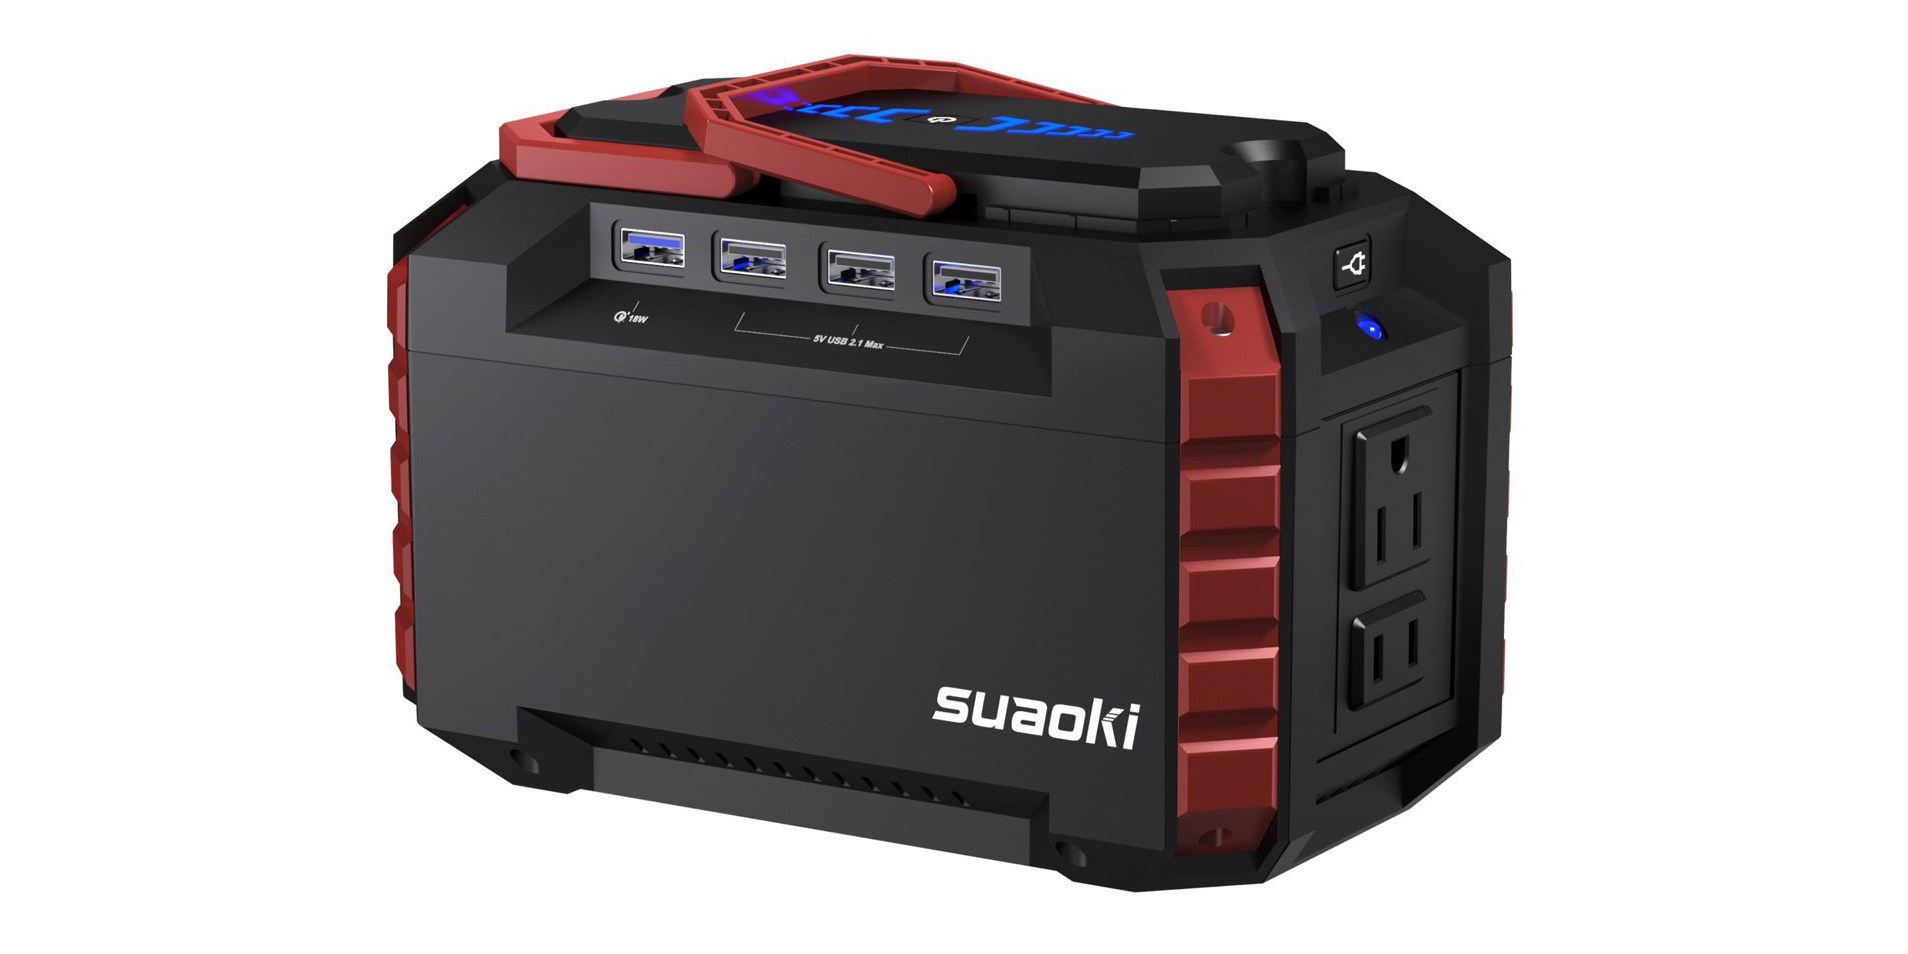 At $119, Suaoki's Portable Power Station has USB ports, AC outlets, more